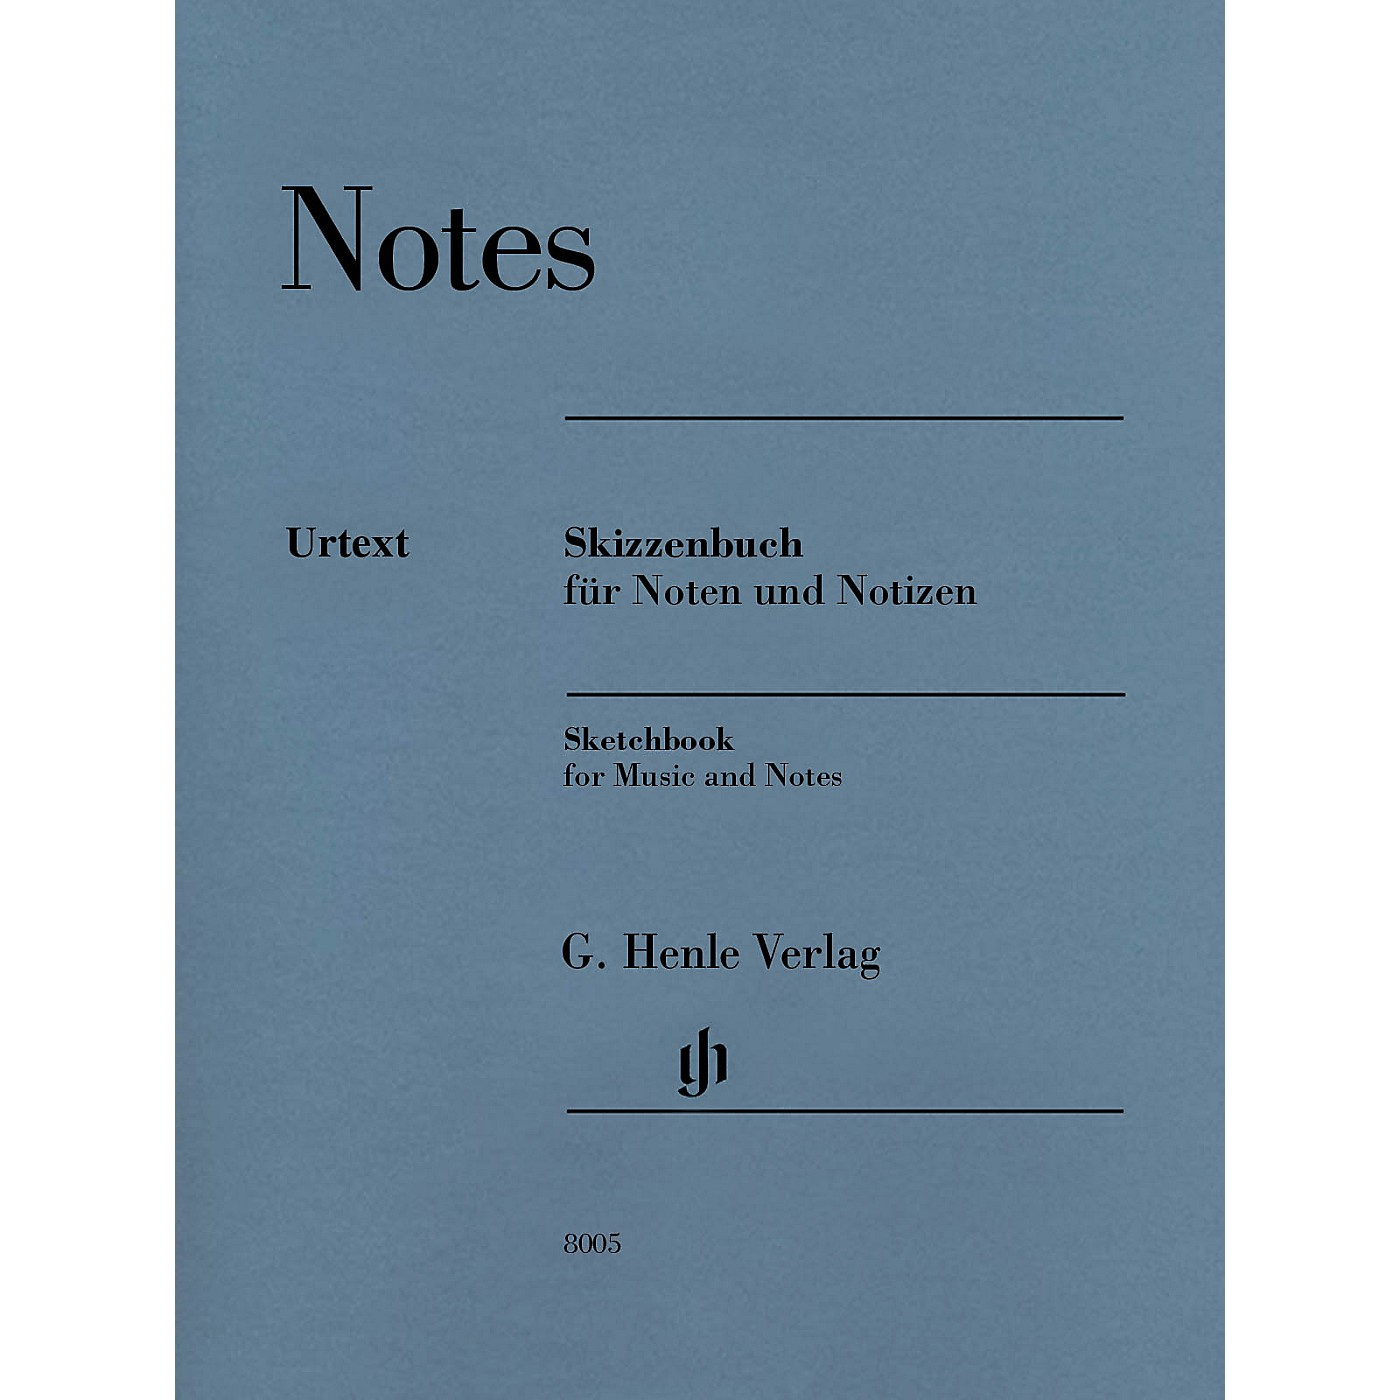 G. Henle Verlag Sketchbook (for Music and Notes) Henle Music Folios Series Softcover thumbnail